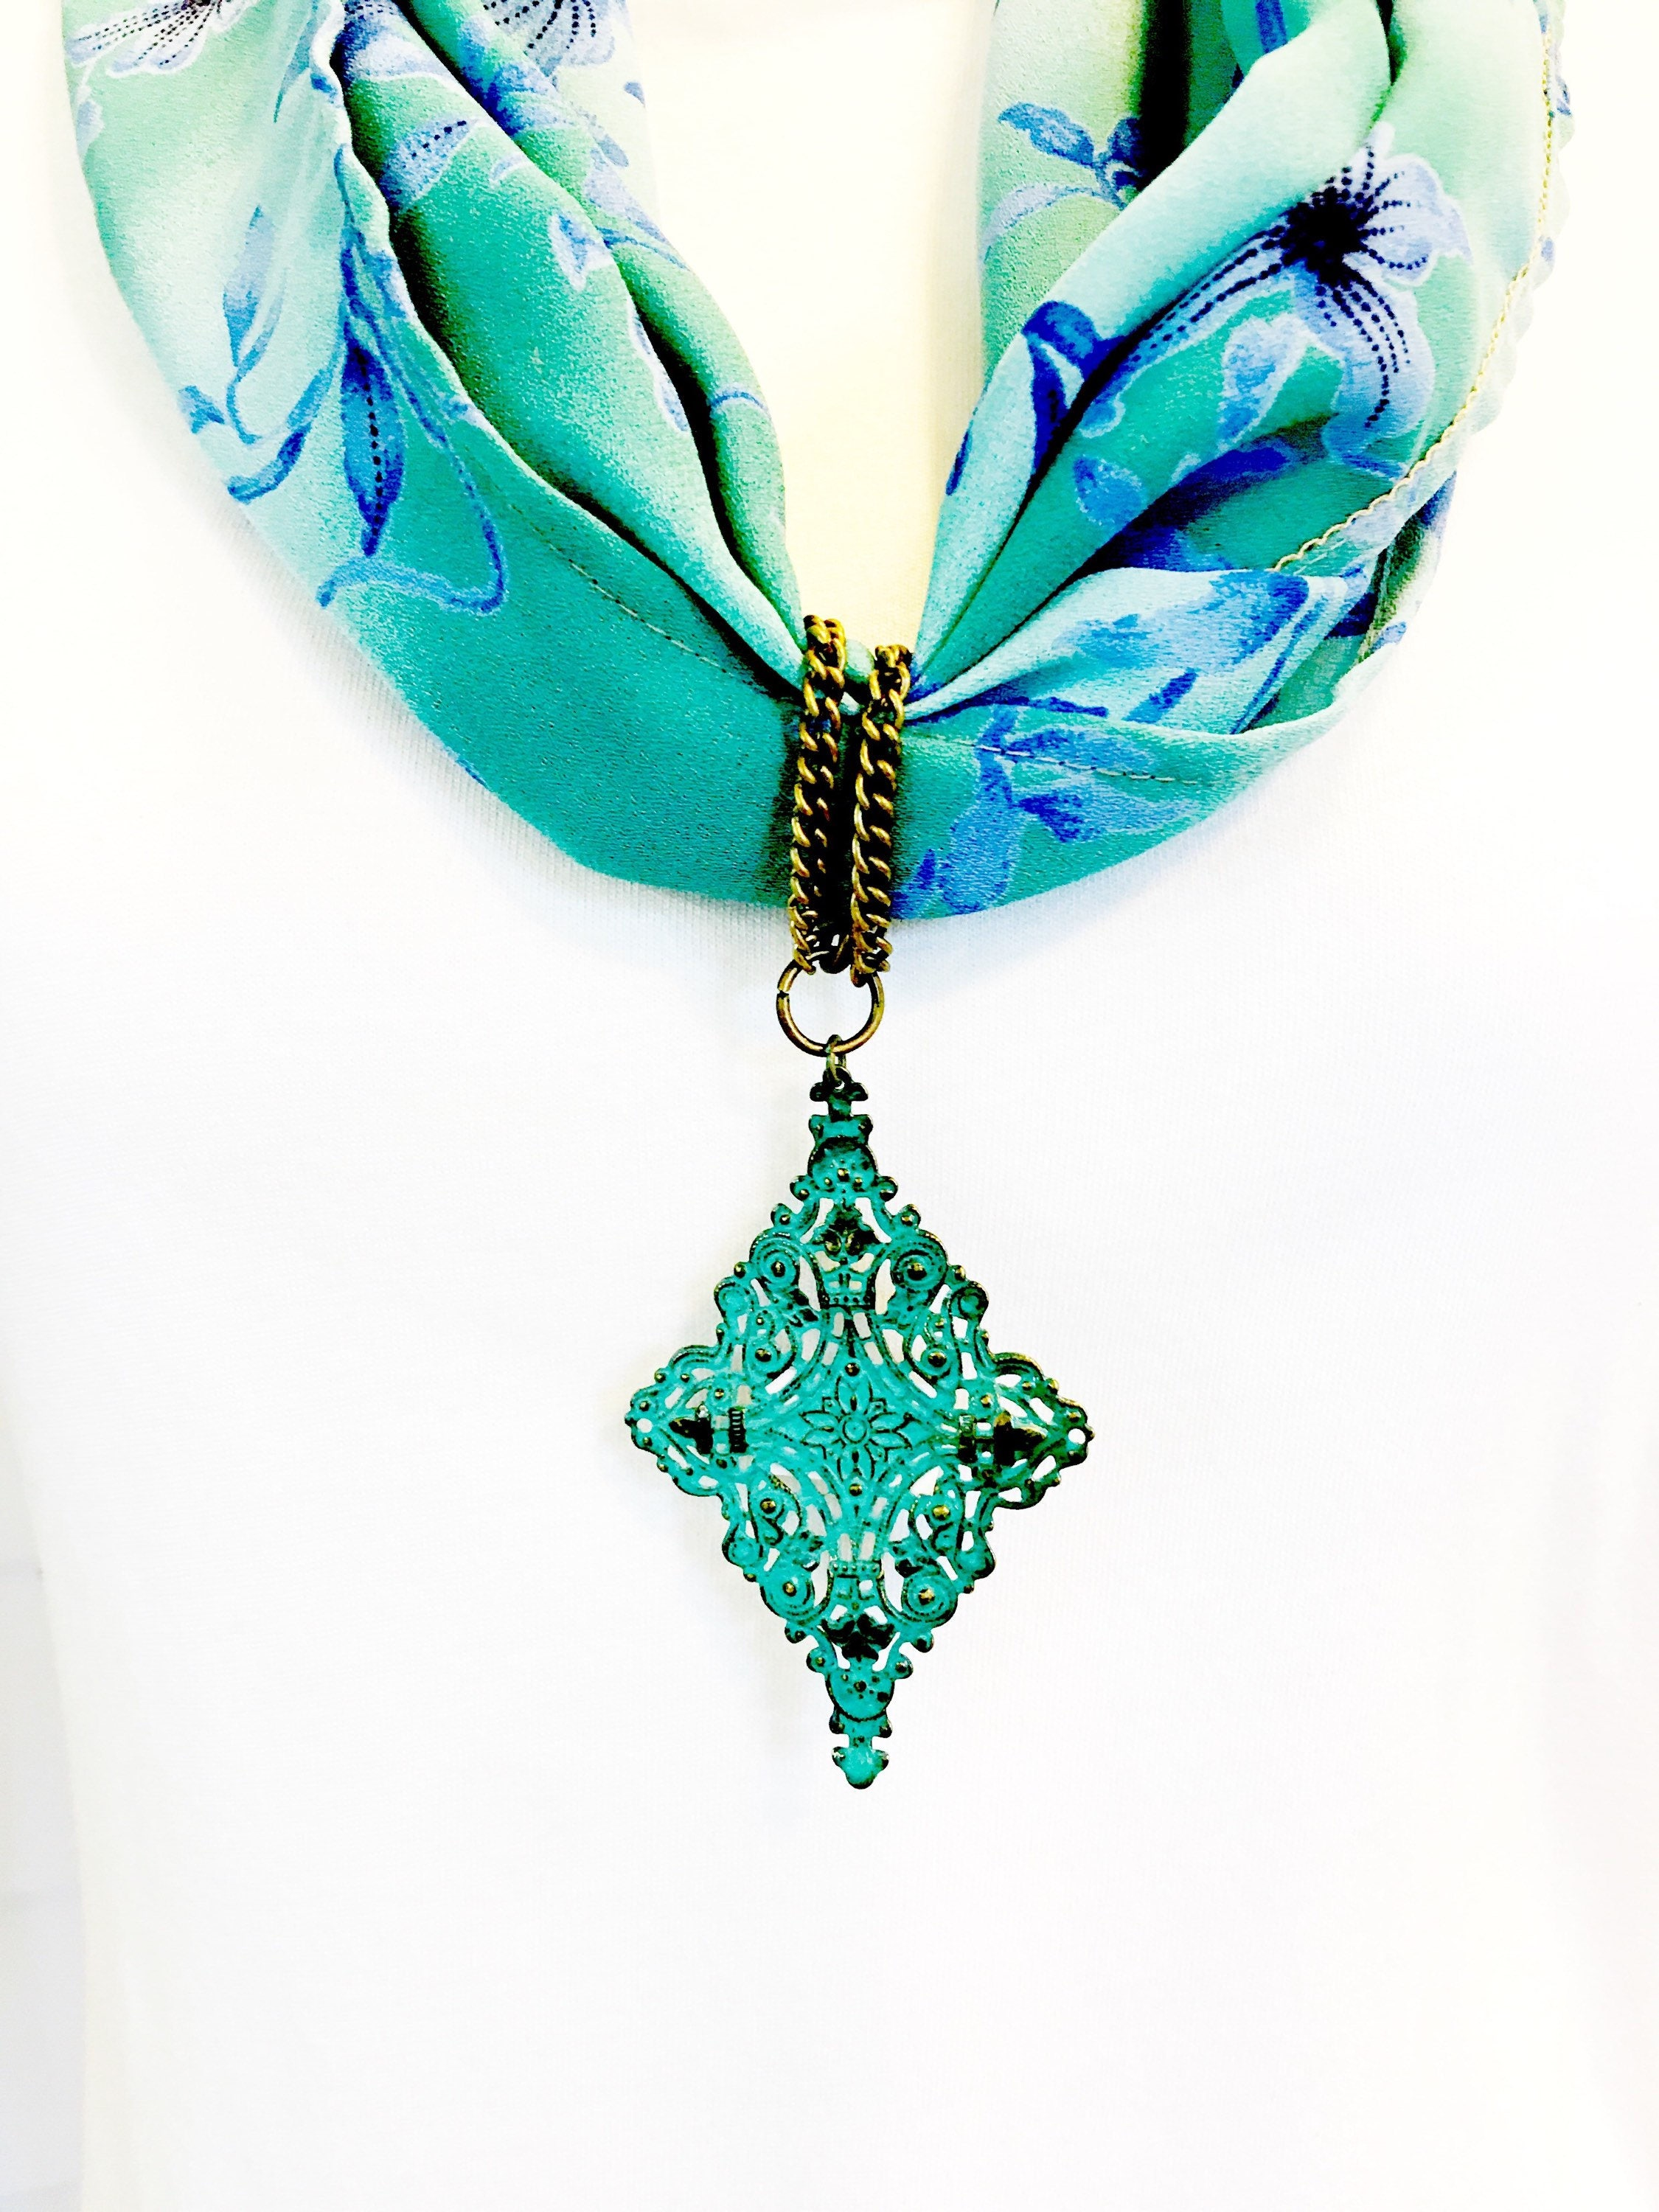 Turquoise scarf jewelry turquoise filigree pendant scarf turquoise scarf jewelry turquoise filigree pendant scarf necklace jewelry metal turquoise scarf pendant scarf ring scarf slide aloadofball Gallery